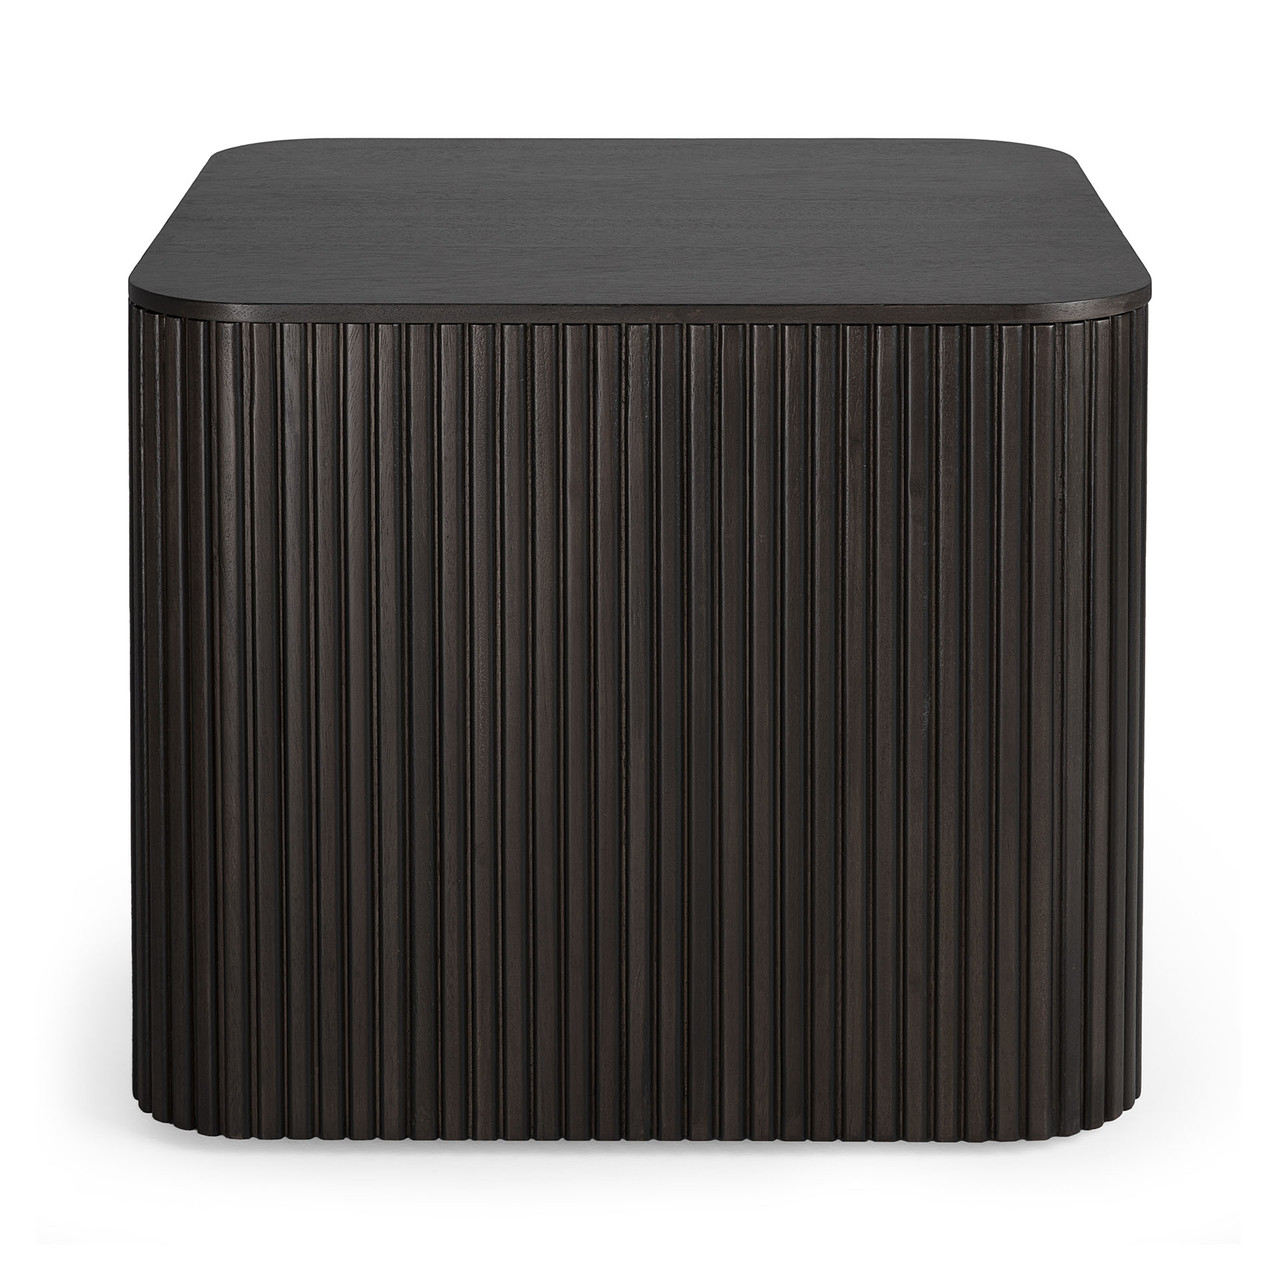 Mahogany Roller Max Dark Brown Square Side Table